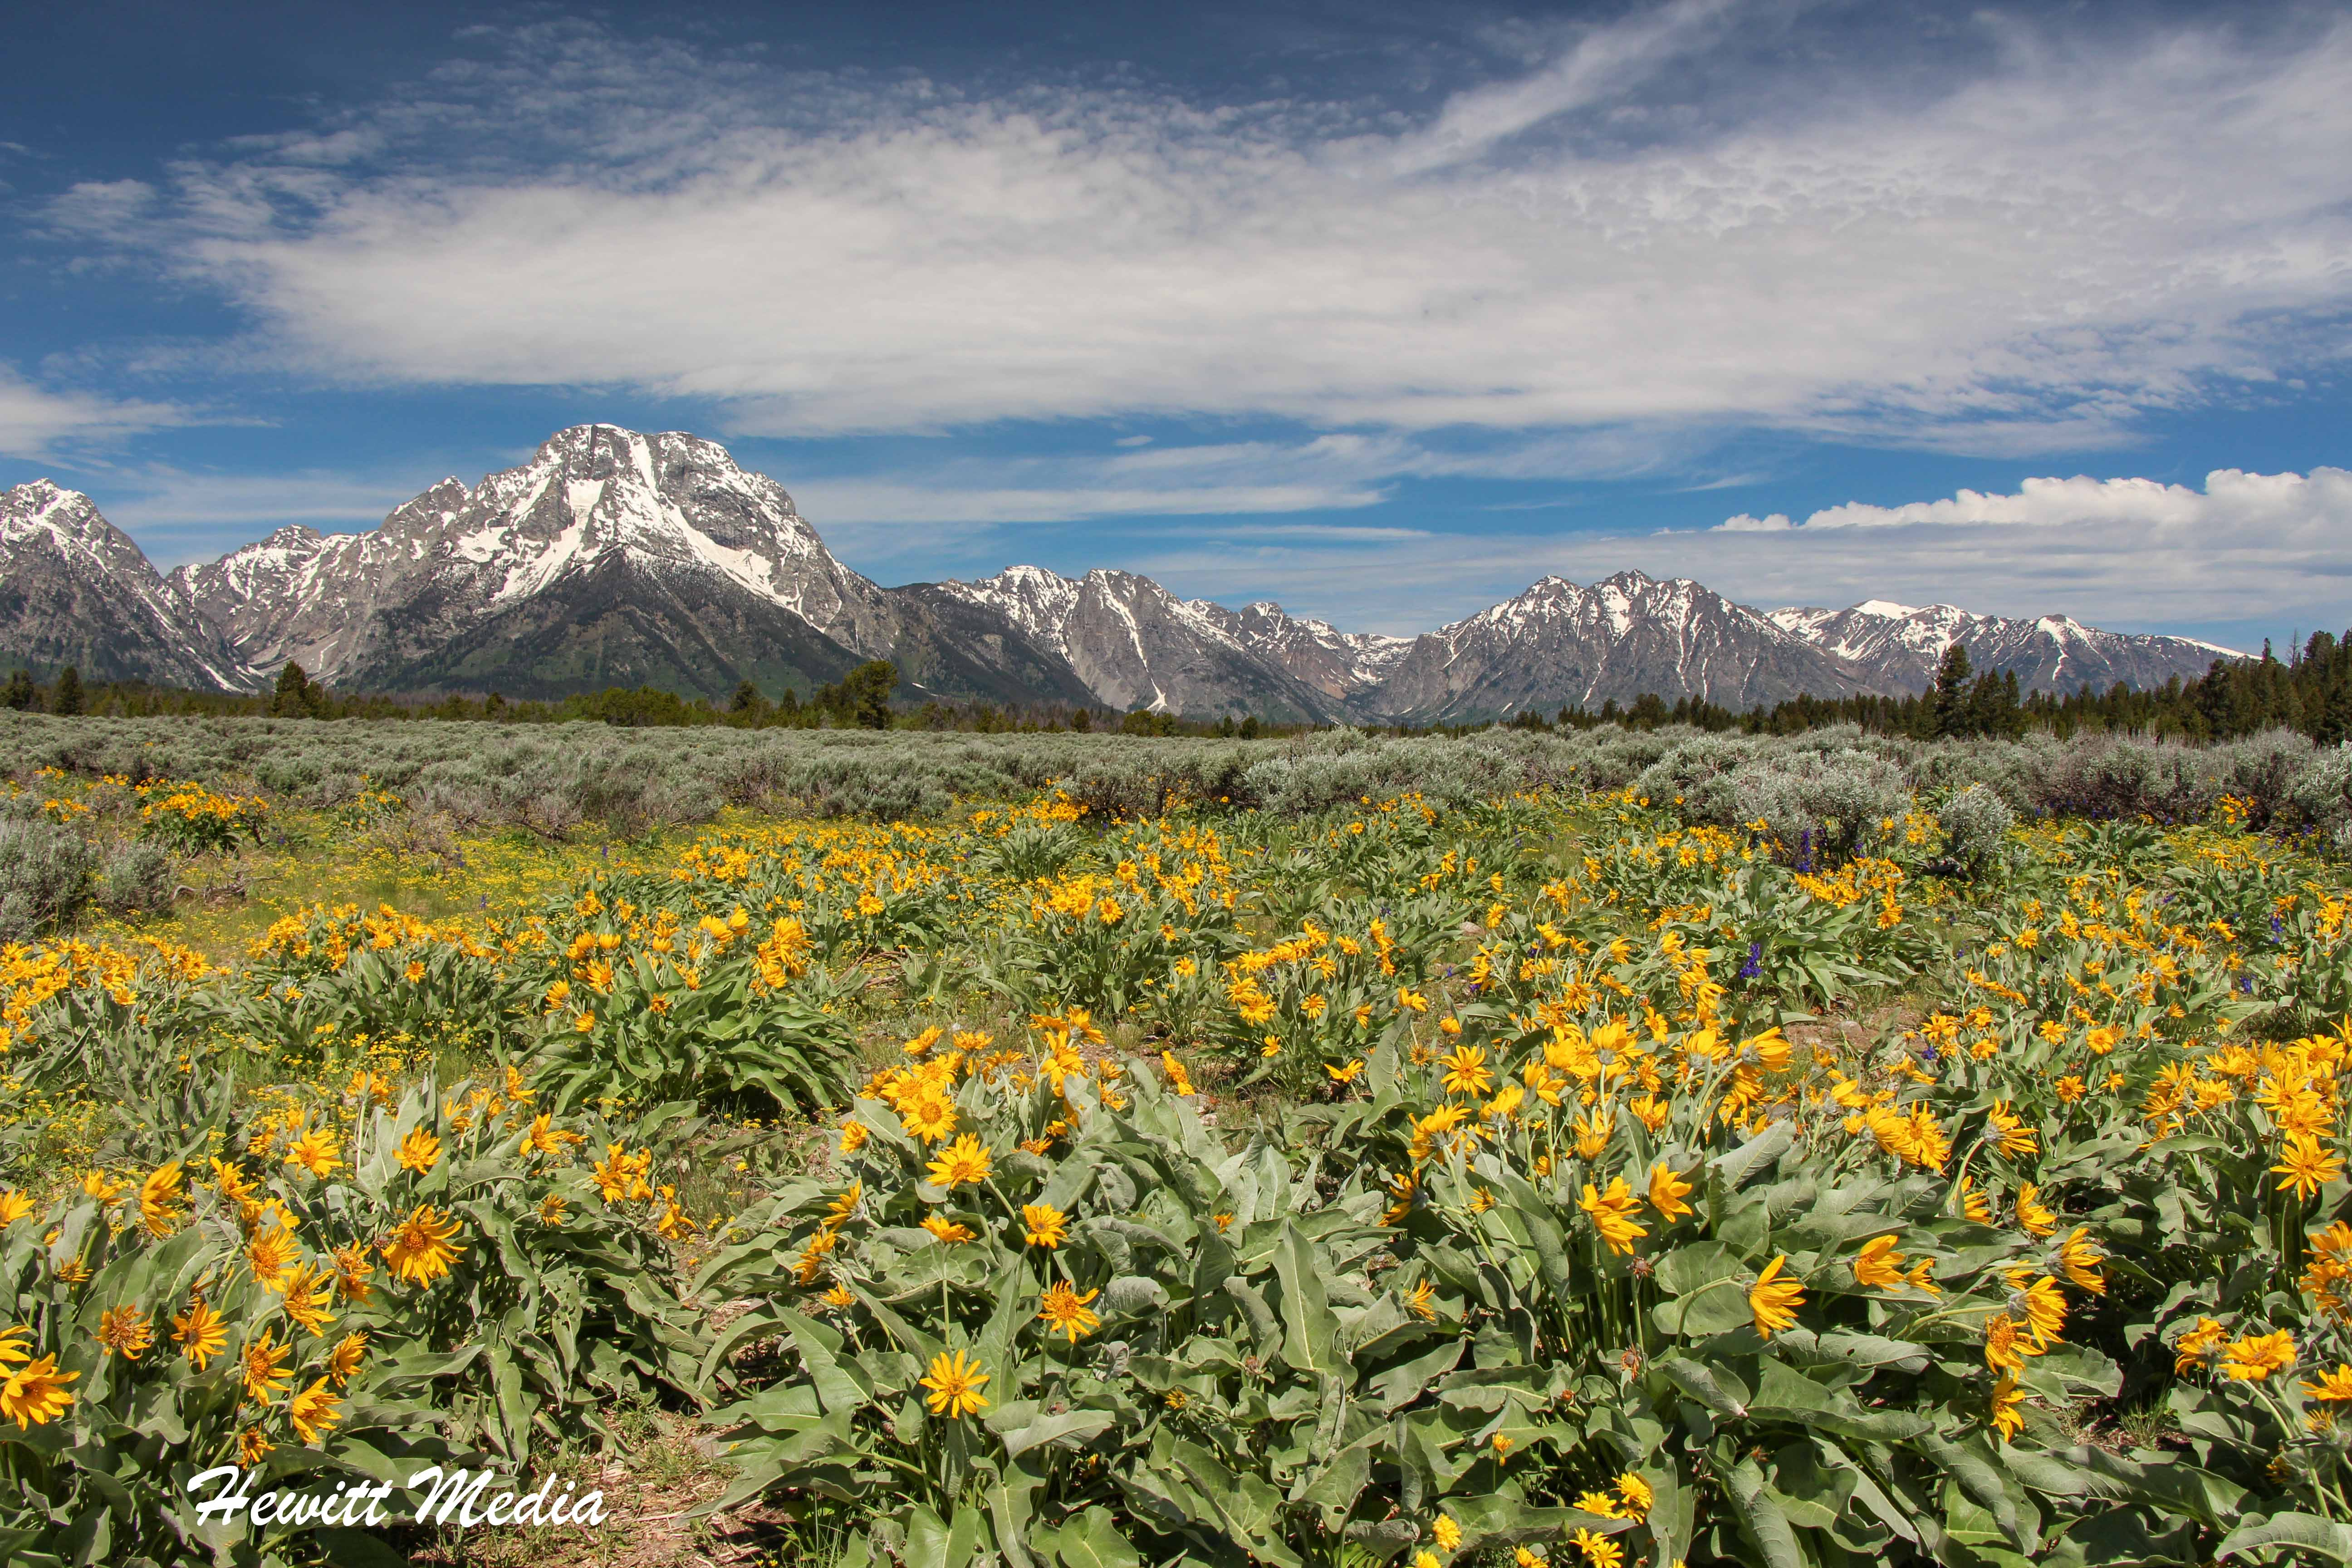 Flowers in front of the Grand Tetons